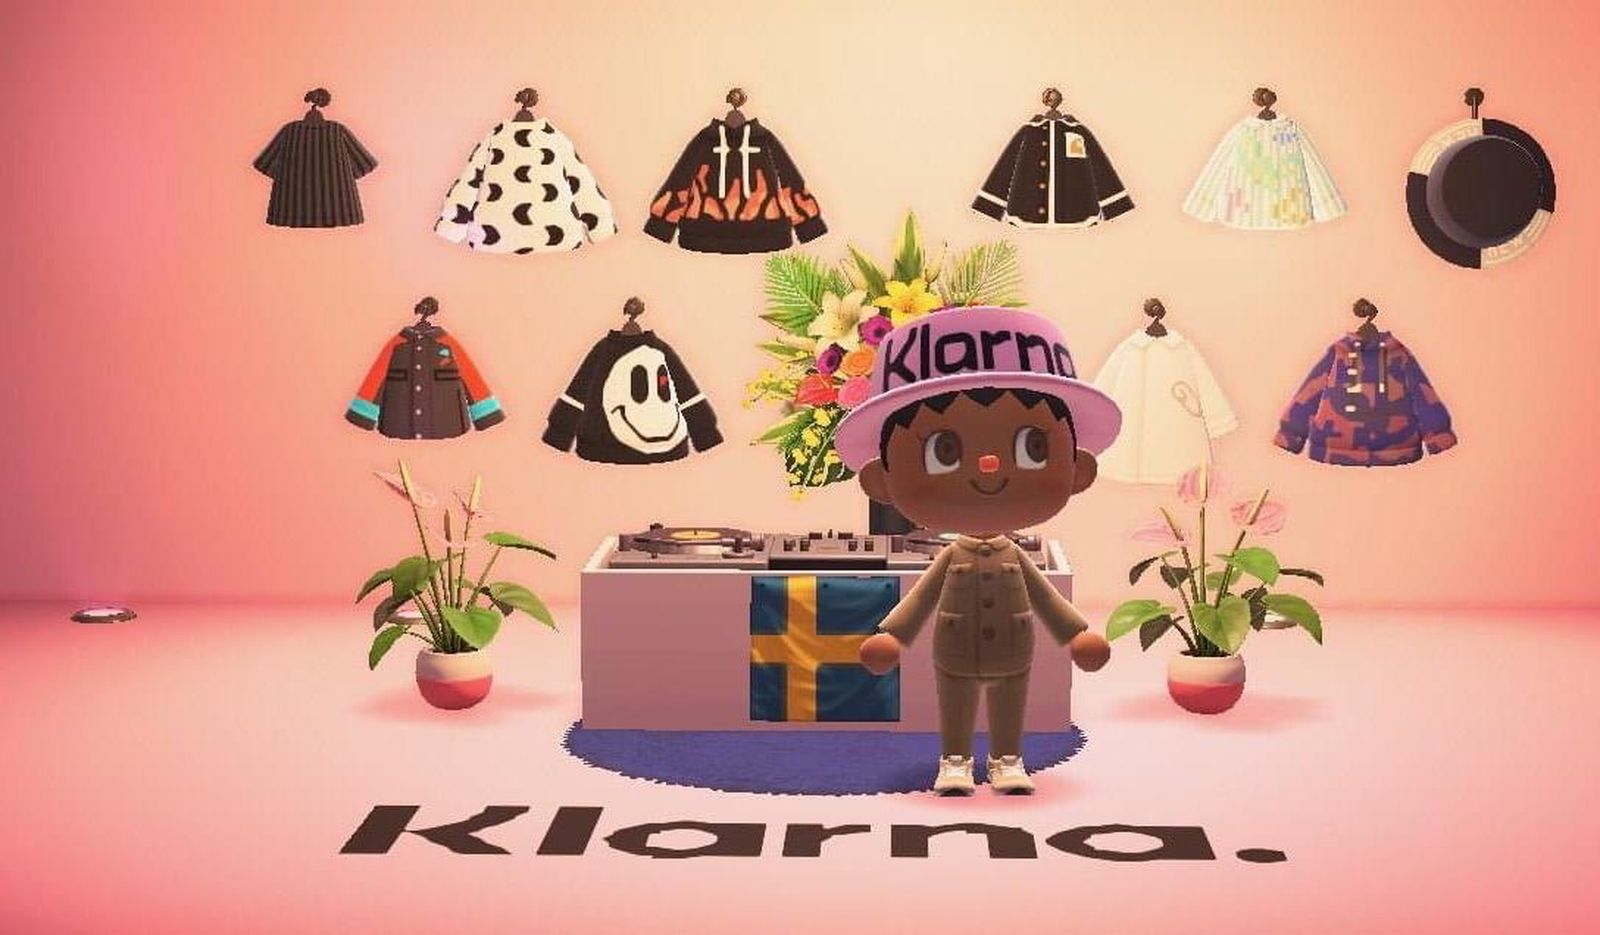 Swedish shopping app Klarna partners with 'Animal Crossing' on an upcoming virtual pop-up shop.